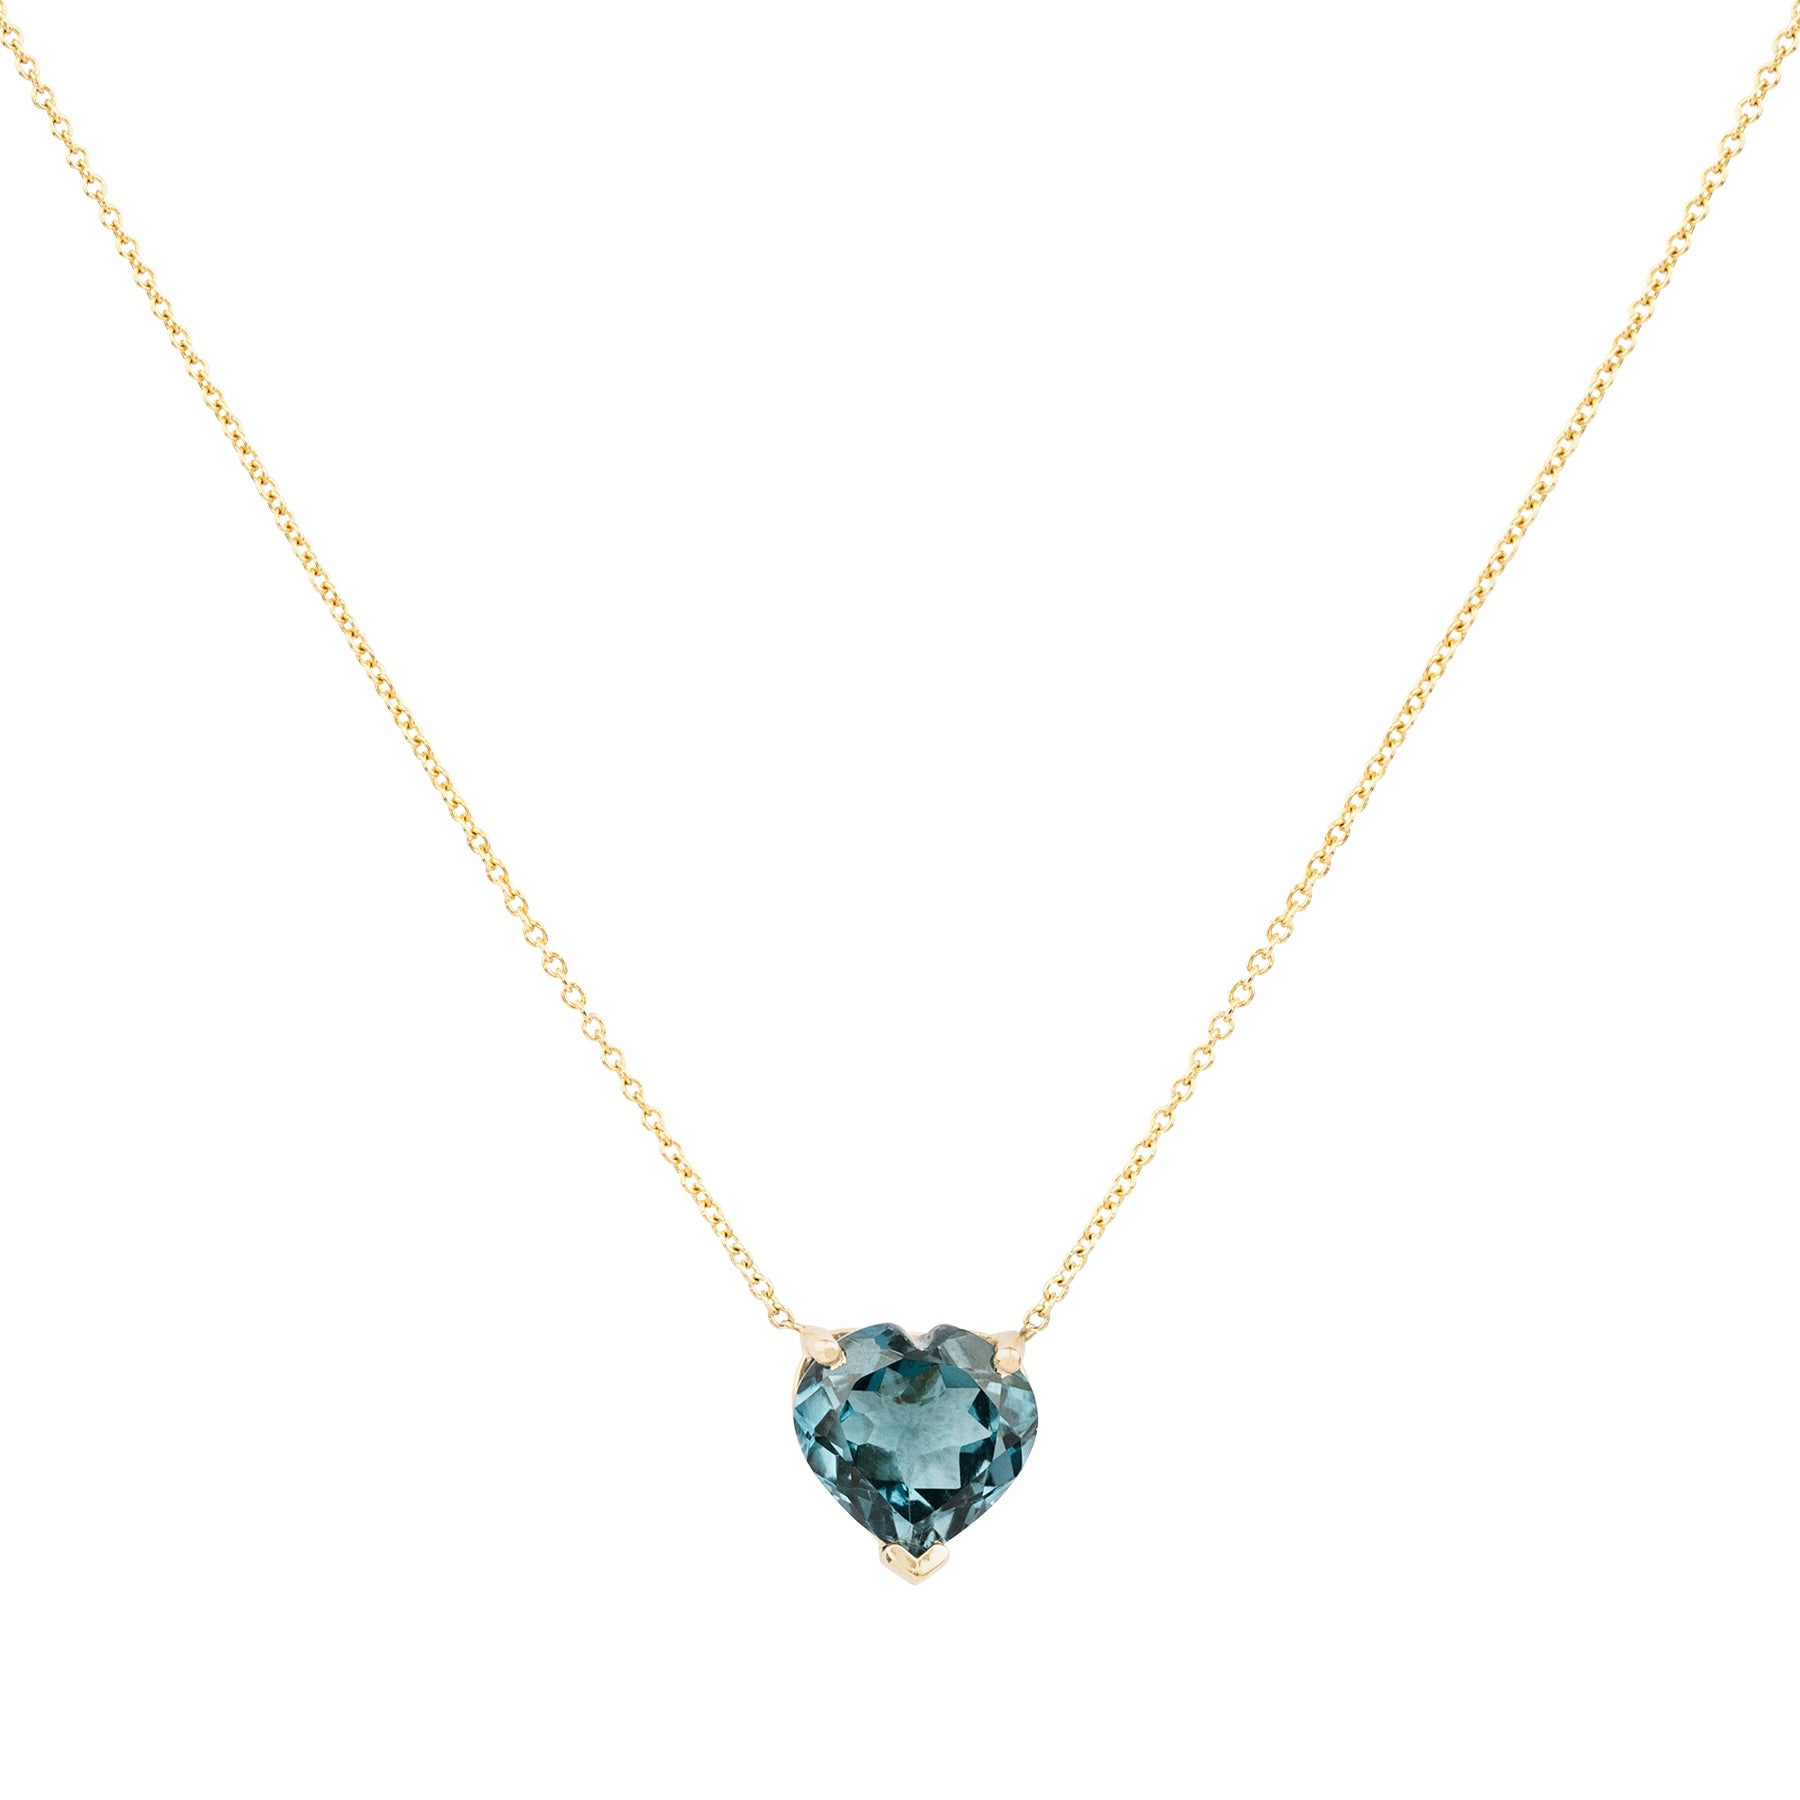 Gem Candy London Blue Topaz Heart Necklace